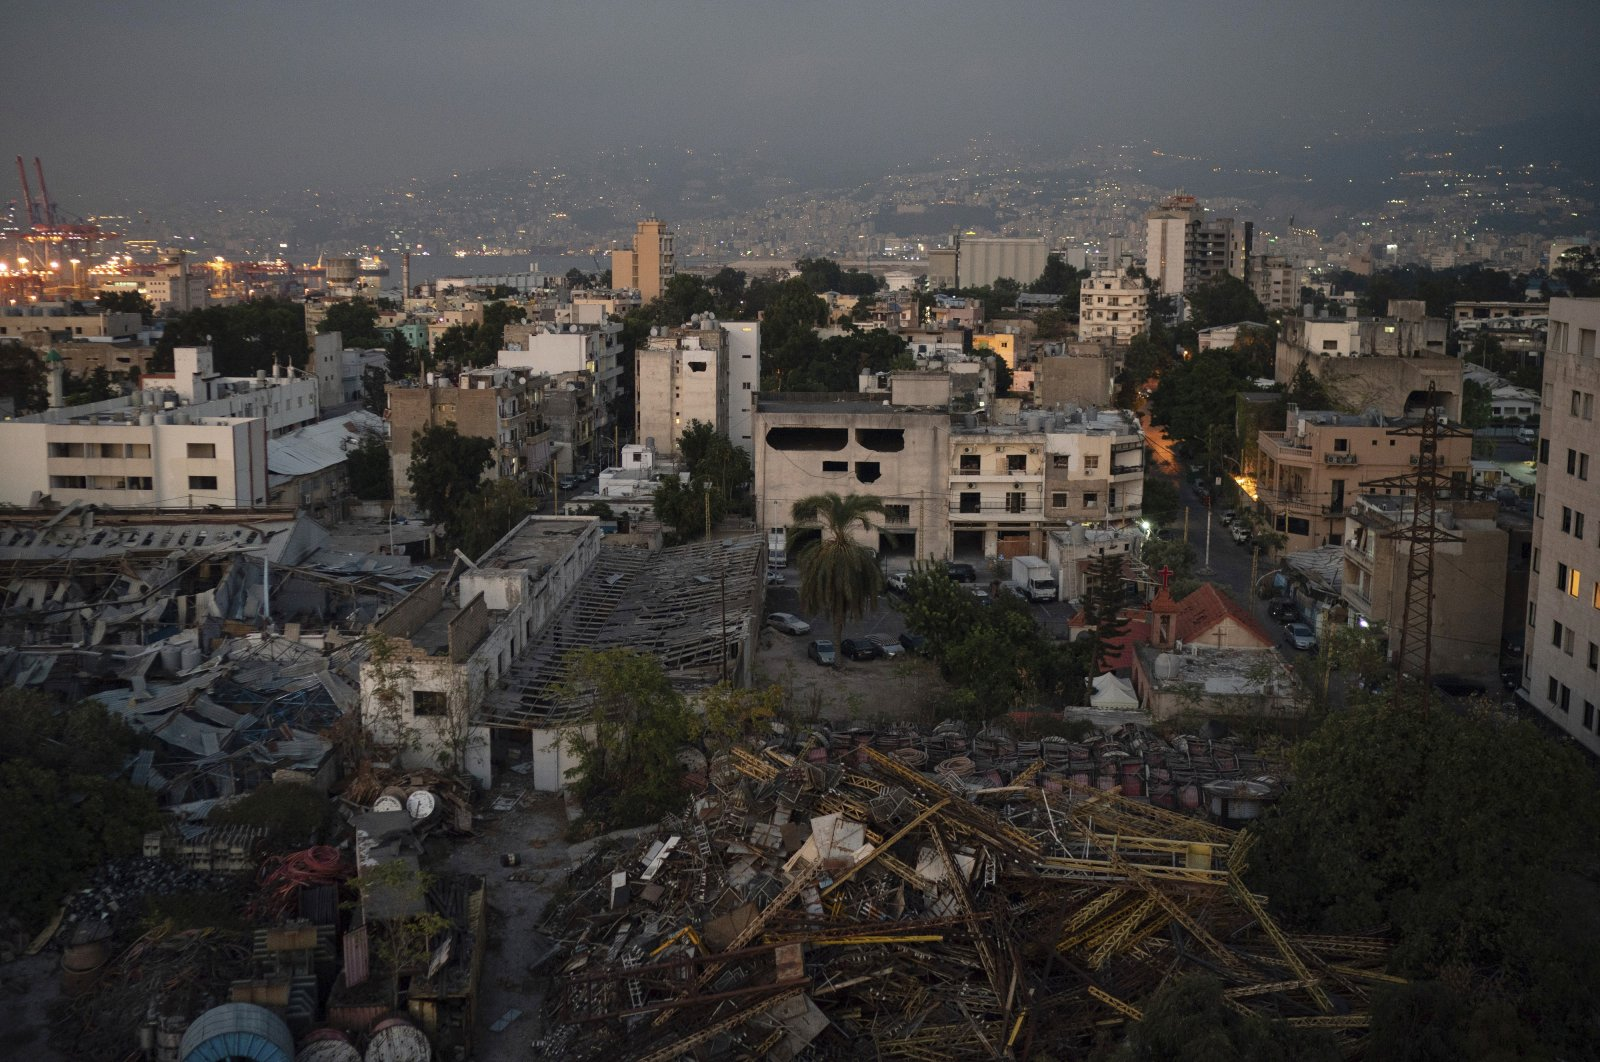 Damaged buildings are seen near the site of last week's massive explosion in the port of Beirut, Lebanon, Friday, Aug. 14, 2020. (AP Photo)